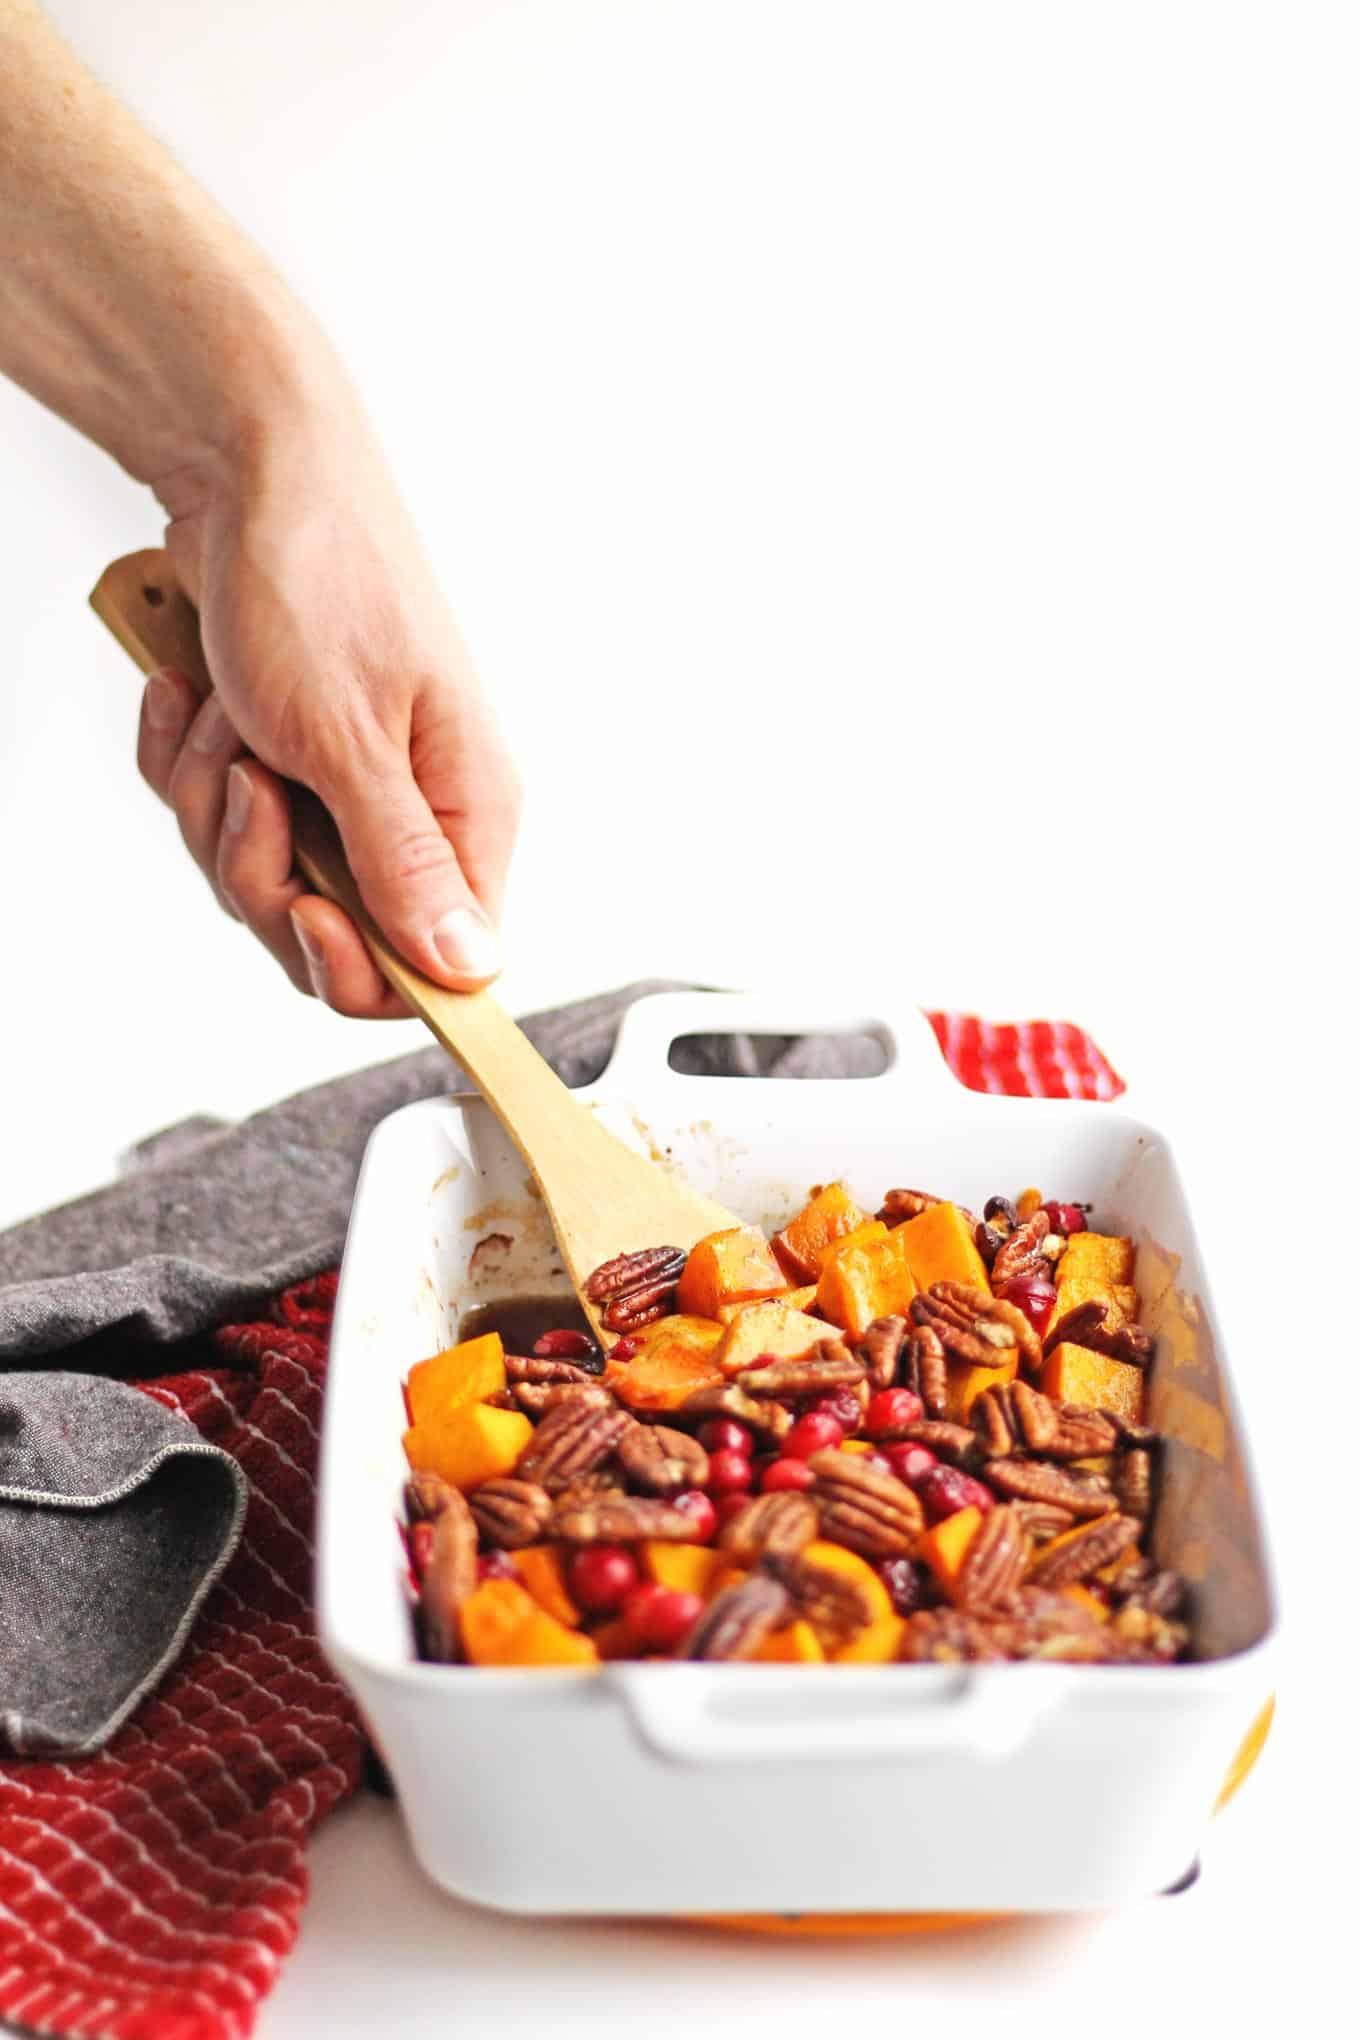 Vegan maple pecan roasted butternut squash and cranberries! Simple, Thanksgiving, Christmas, fall, holiday side dish. Roasted maple cinnamon butternut squash. // Rhubarbarians #sidedish #thanksgiving #christmas #holiday #vegan #butternutsquash #fallrecipe